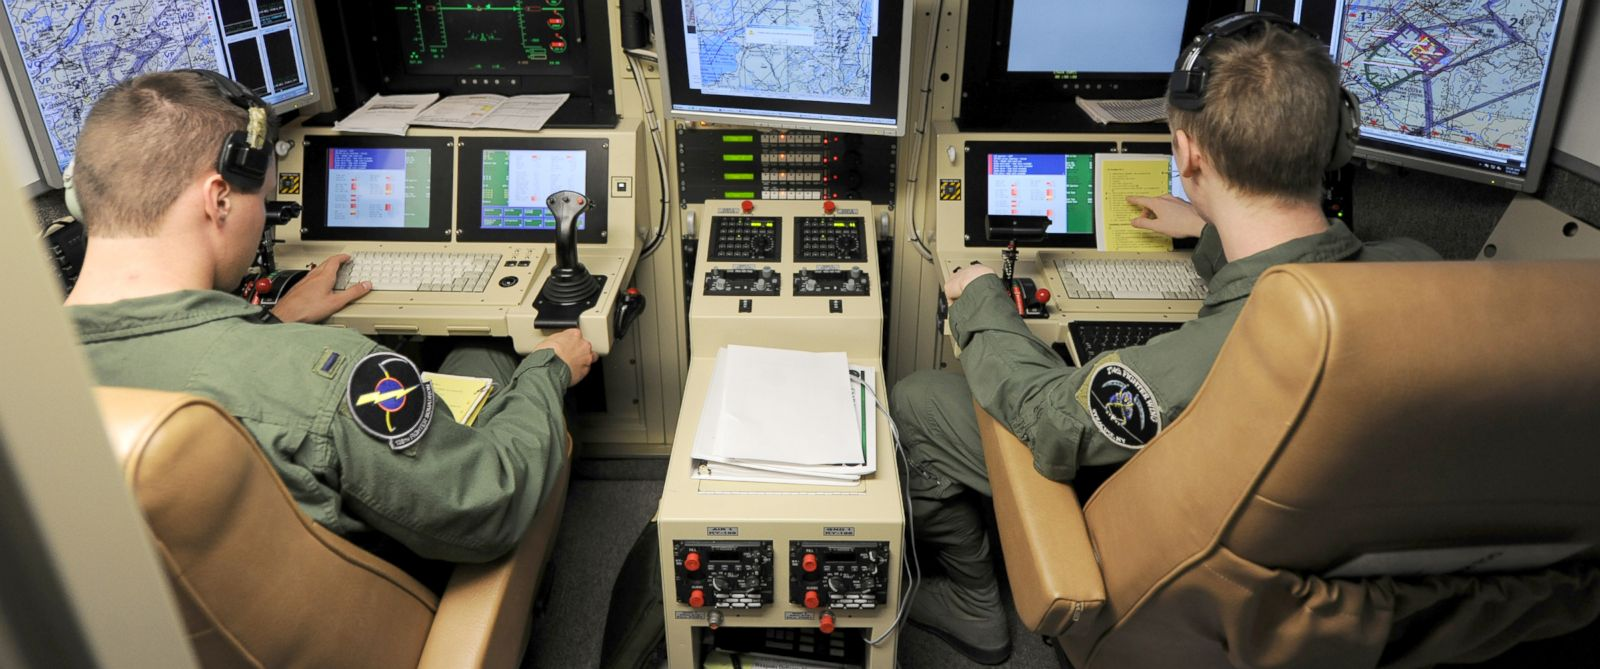 PHOTO: A student pilot and sensor operator man the controls of a MQ-9 Reaper in a ground-based cockpit during a training mission flown from Hancock Field Air National Guard Base, Syracuse, New York, June 6, 2012.